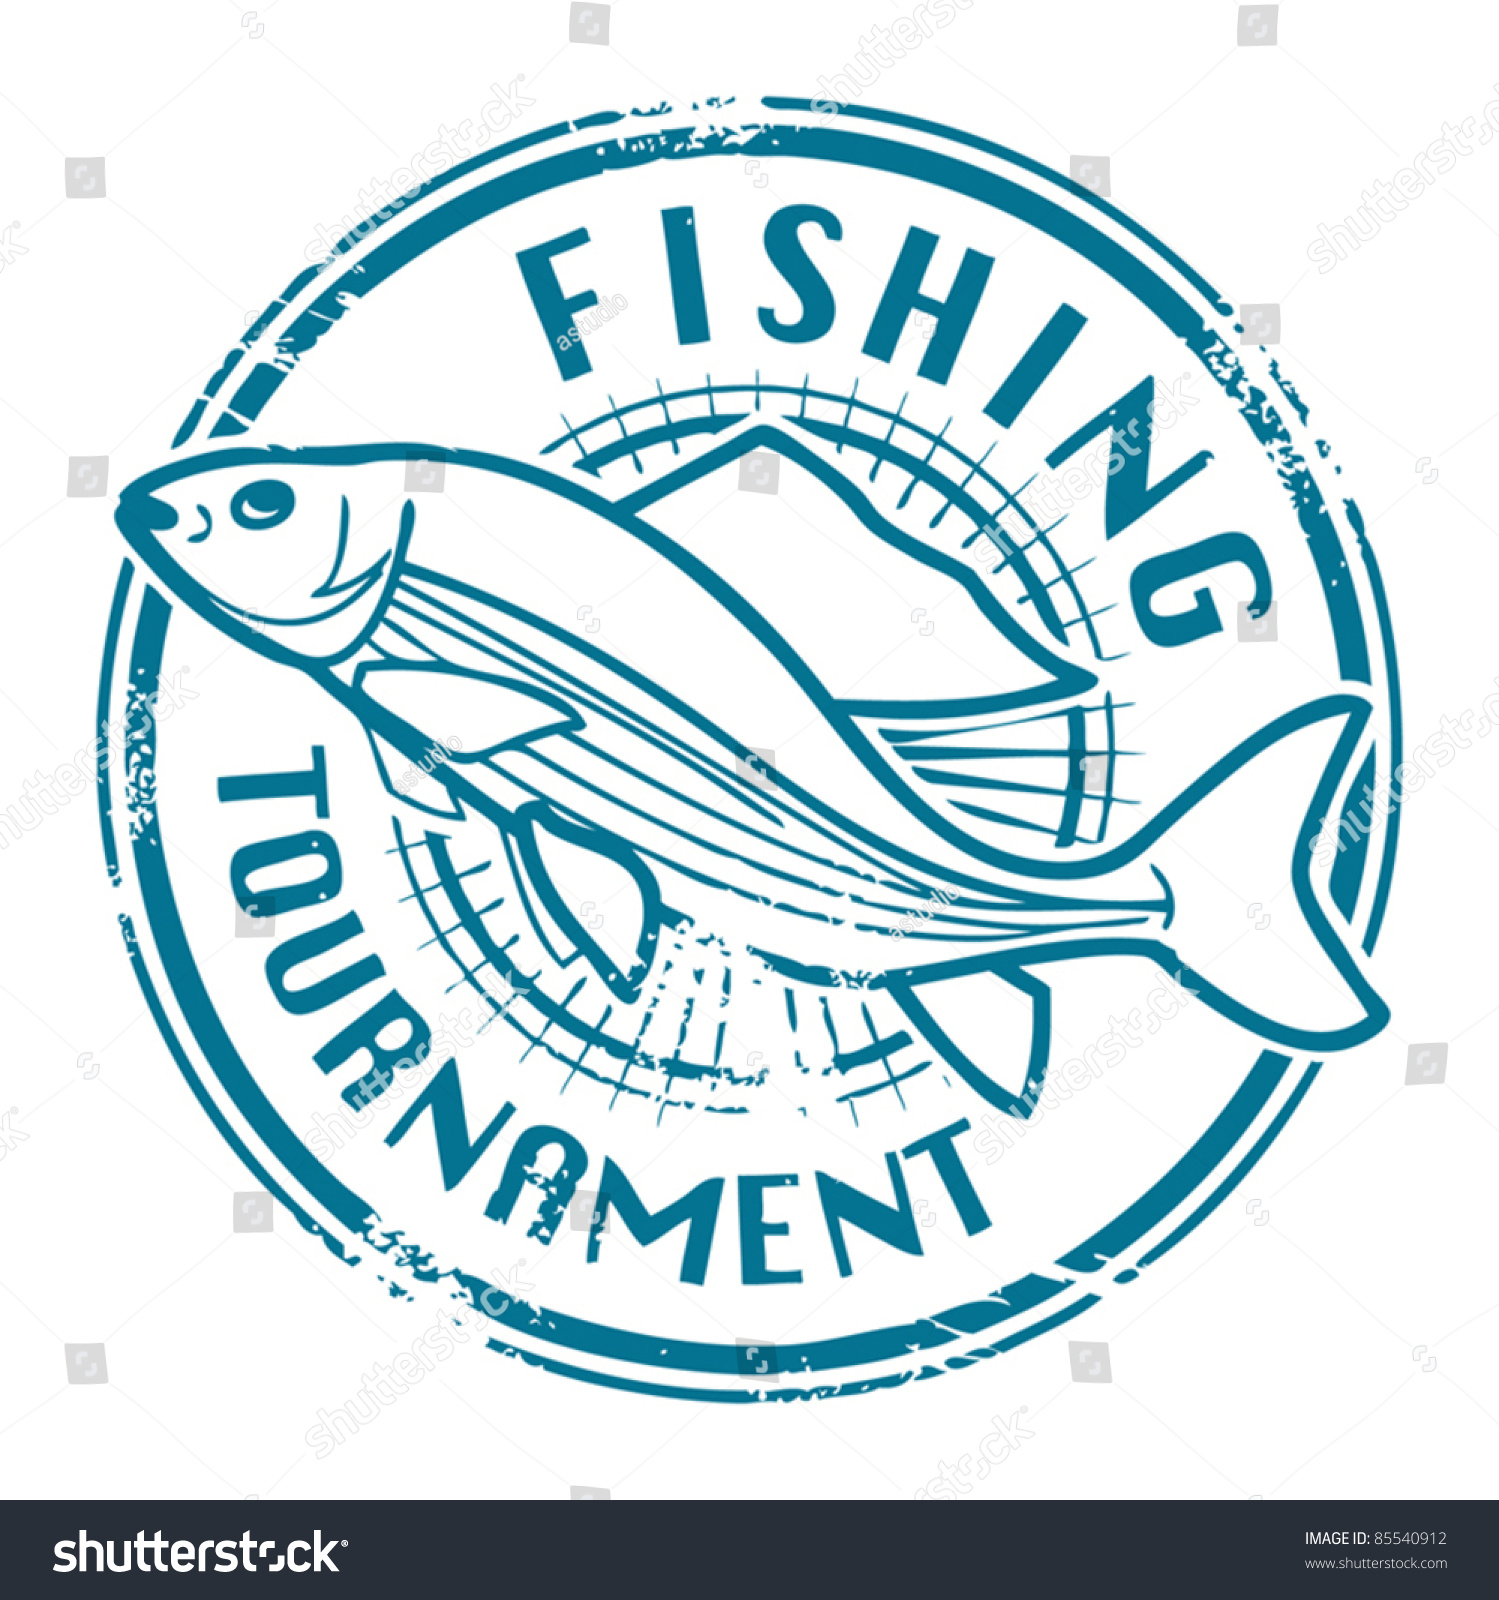 Grunge rubber stamp fish shape text stock vector 85540912 for Fish symboled stamp